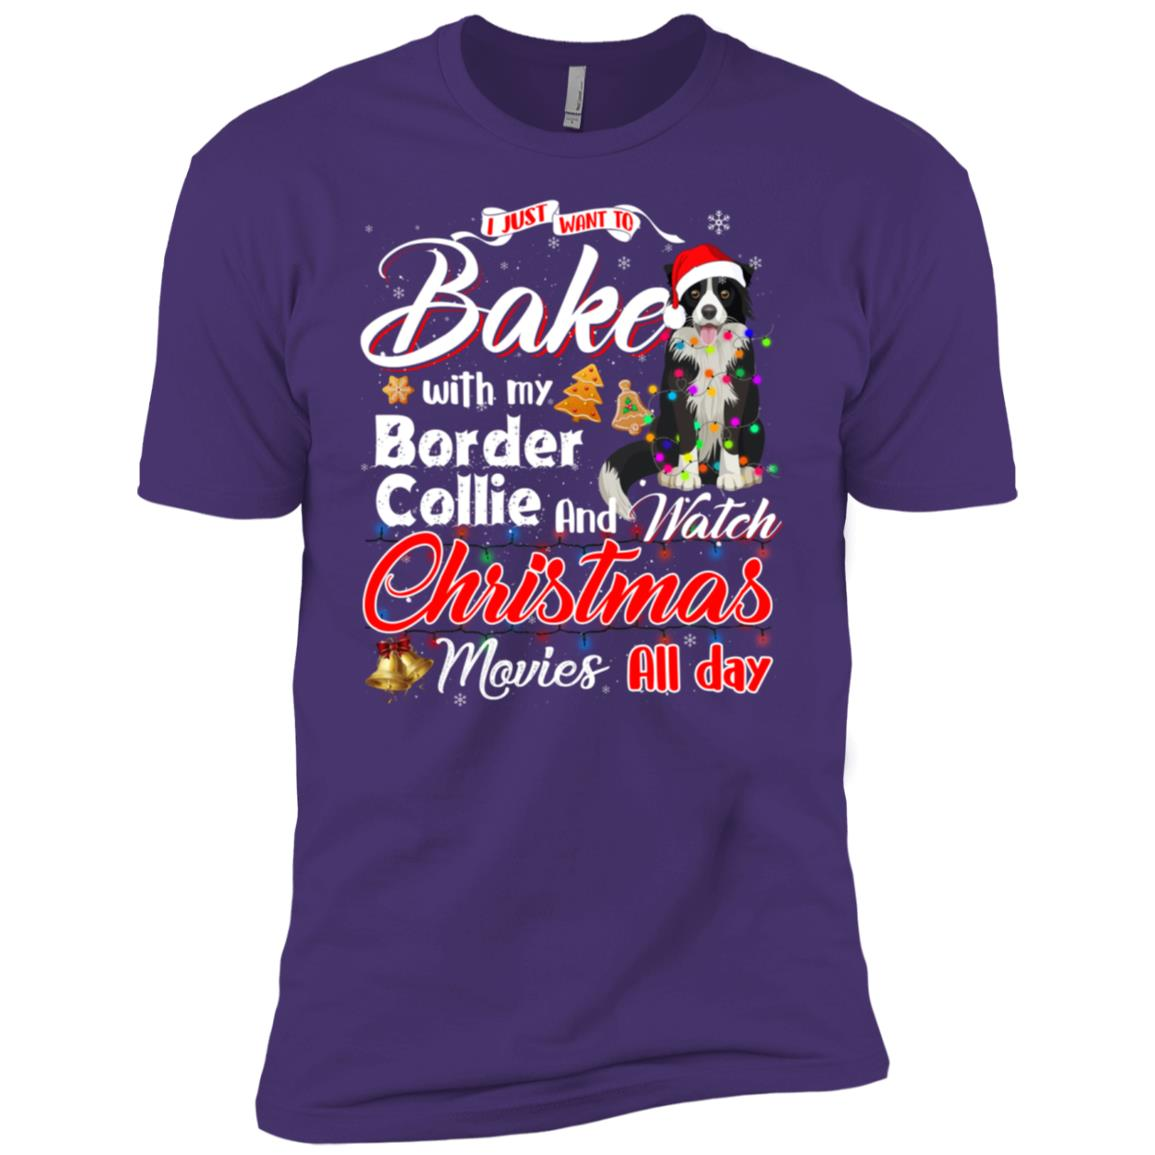 Bake Stuff with Border Collie And Watch Movies Men Short Sleeve T-Shirt